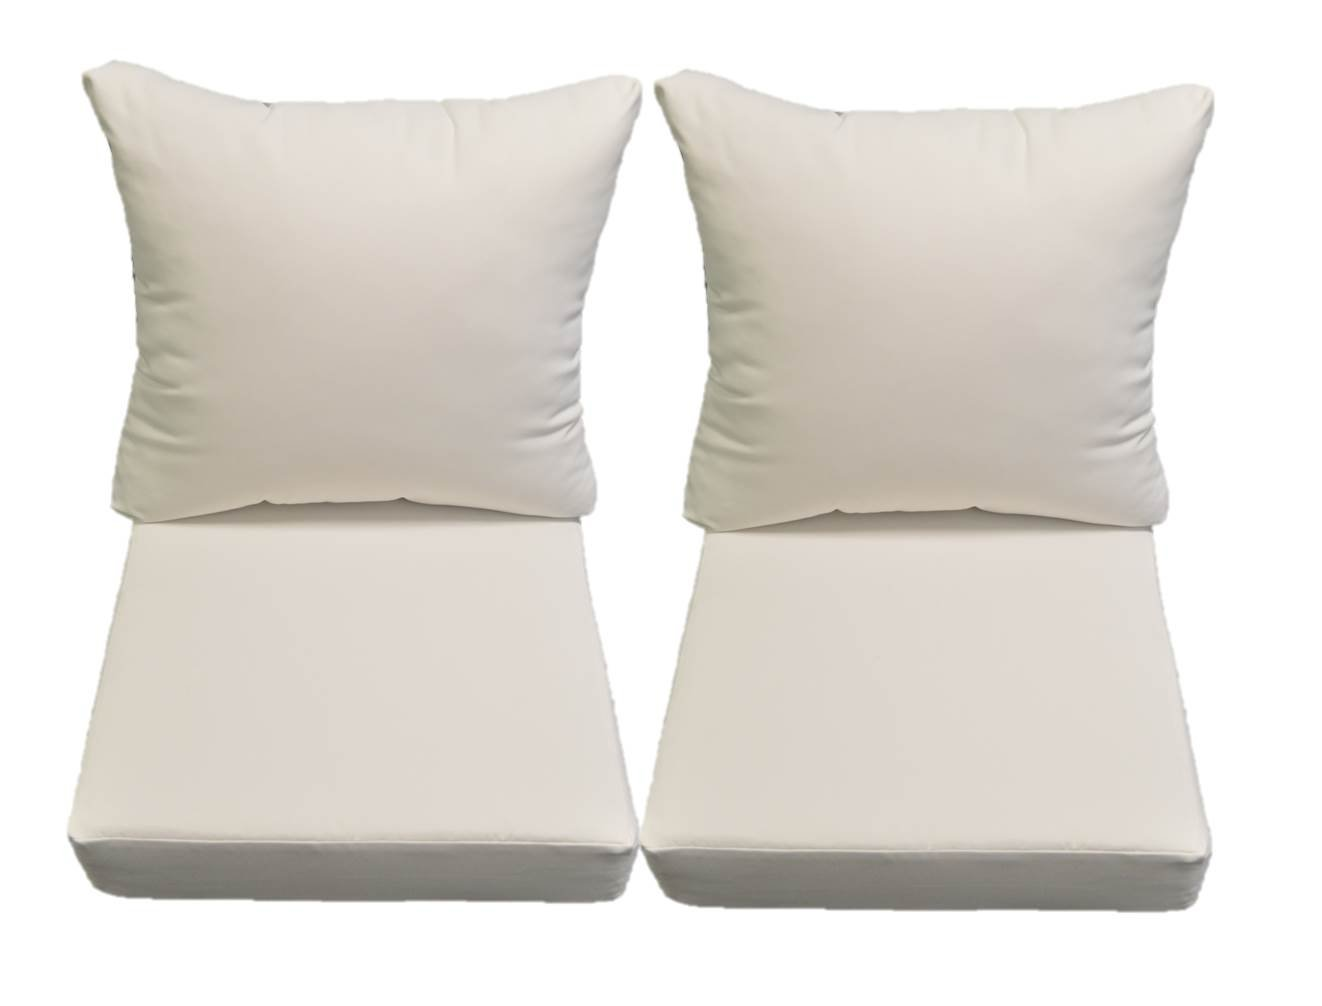 Resort Spa Home Decor Sunbrella Canvas White Cushion Sets for Patio Outdoor Deep Seating Furniture Loveseat – Choice of Size 24 w X 27 d